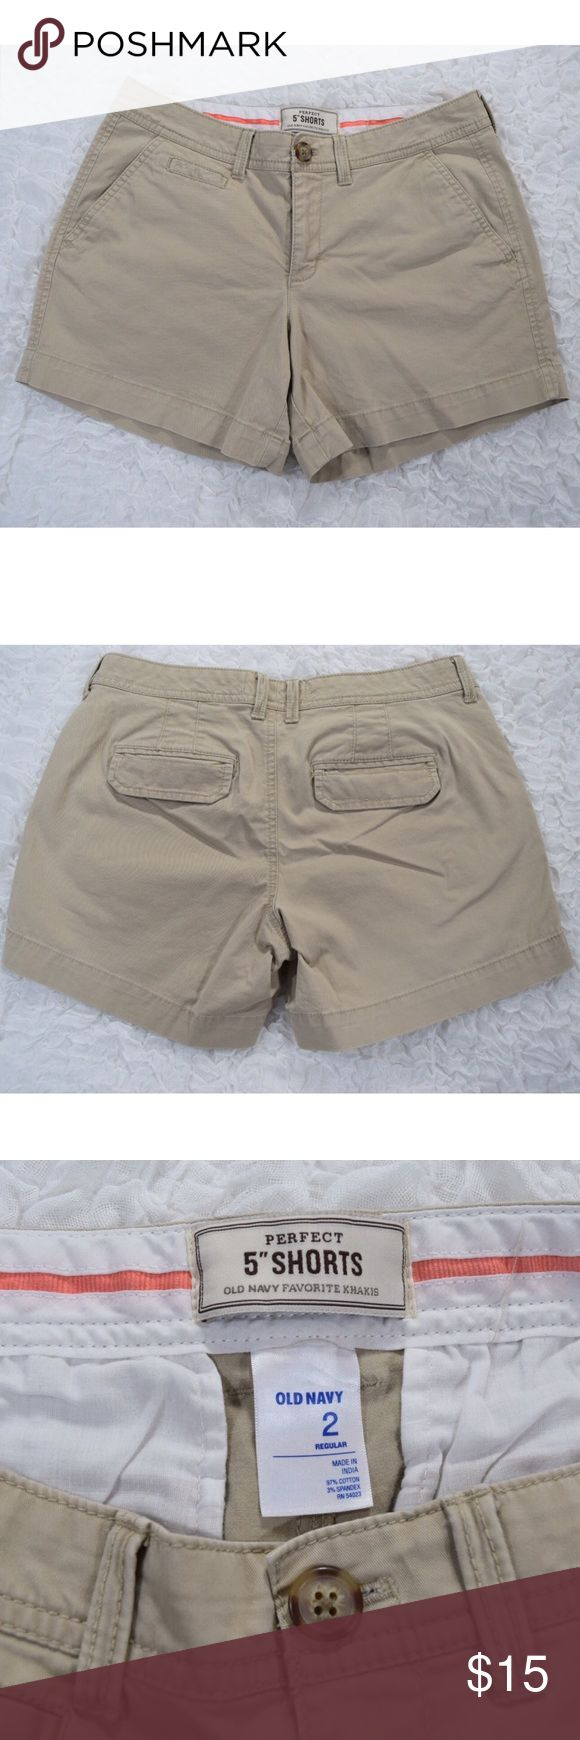 """Old Navy Women's Khaki Shorts Women's Old Navy Khaki Shorts💕Perfect 5"""" Shorts💕Size 2 regular💕Great condition💕2 side pockets💕Small back flap pockets💕Zipper fly💕97% cotton 3% spandex💕4.5"""" inseam from crotch to bottom hem💕Smoke and pet free home Old Navy Shorts"""